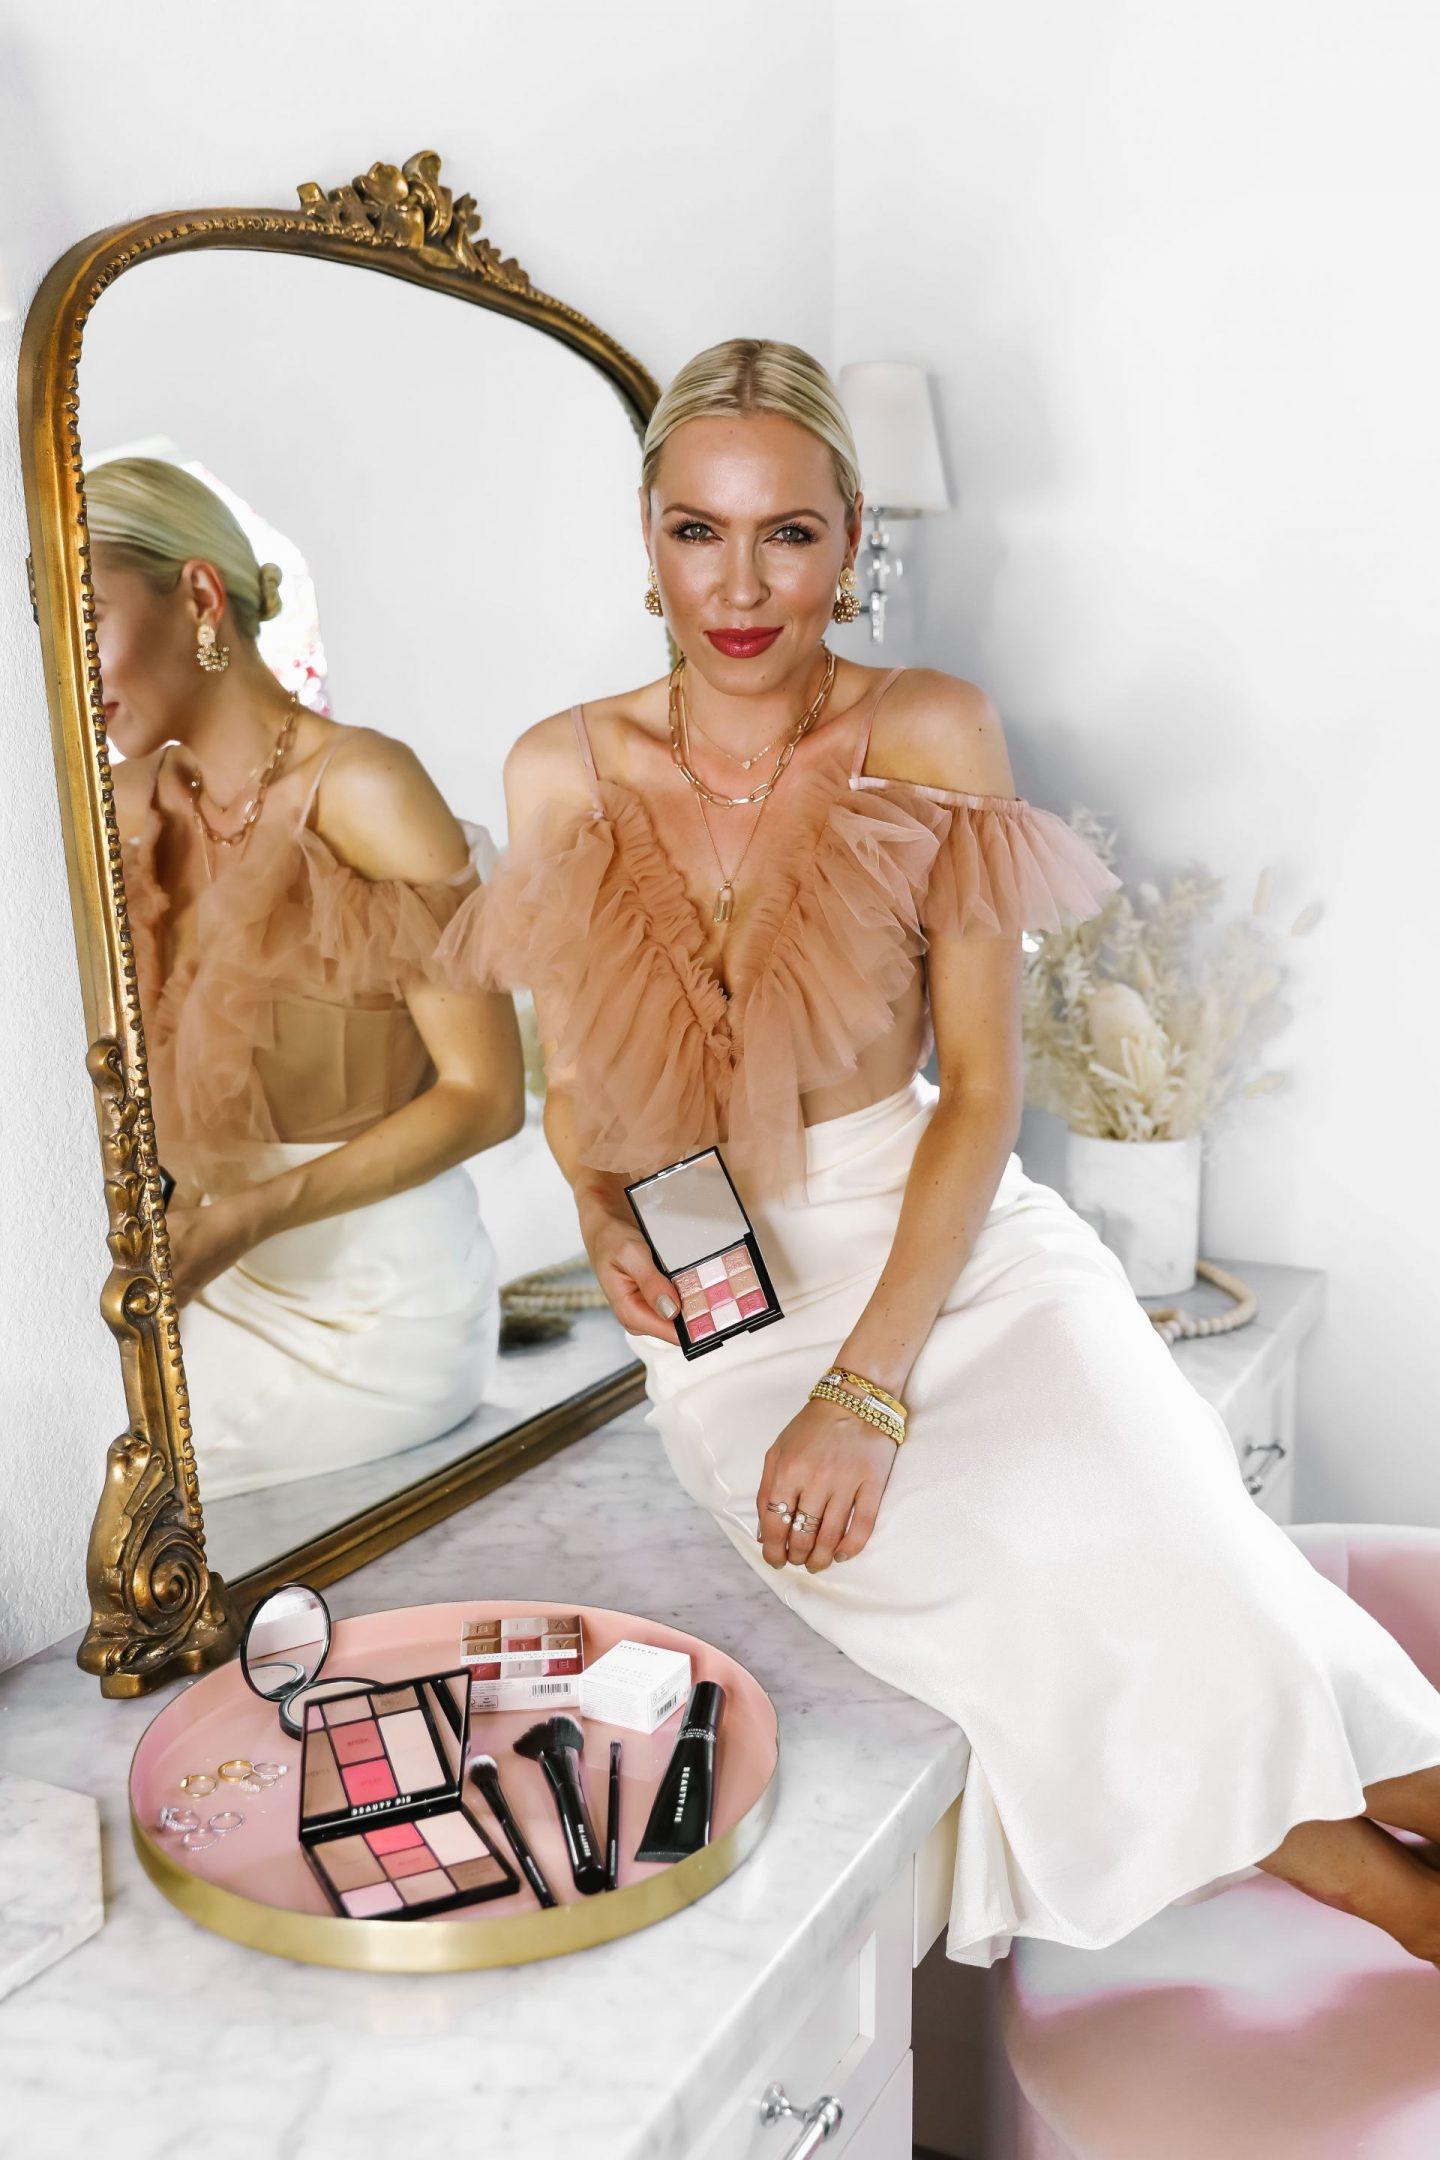 2020 Gift Guide for the beauty lover, featured by San Francisco fashion blogger Lombard and Fifth. Beauty gift ideas like Nuface device, silk face mask, Charlotte Tilbury make up.